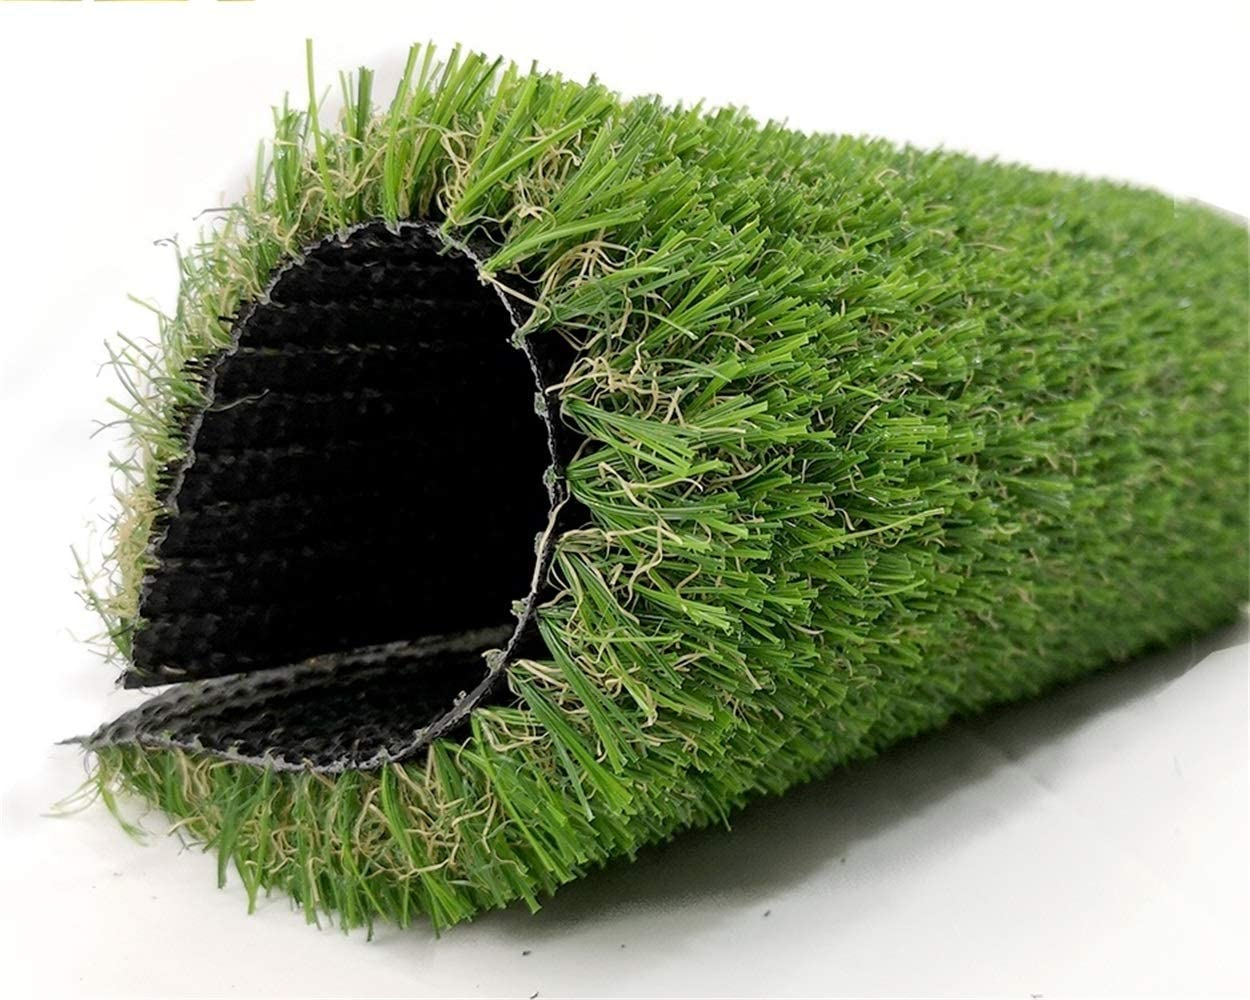 Moxie Direct New York Mall Super sale Artificial Grass Turf Dog Real Faux Thick for